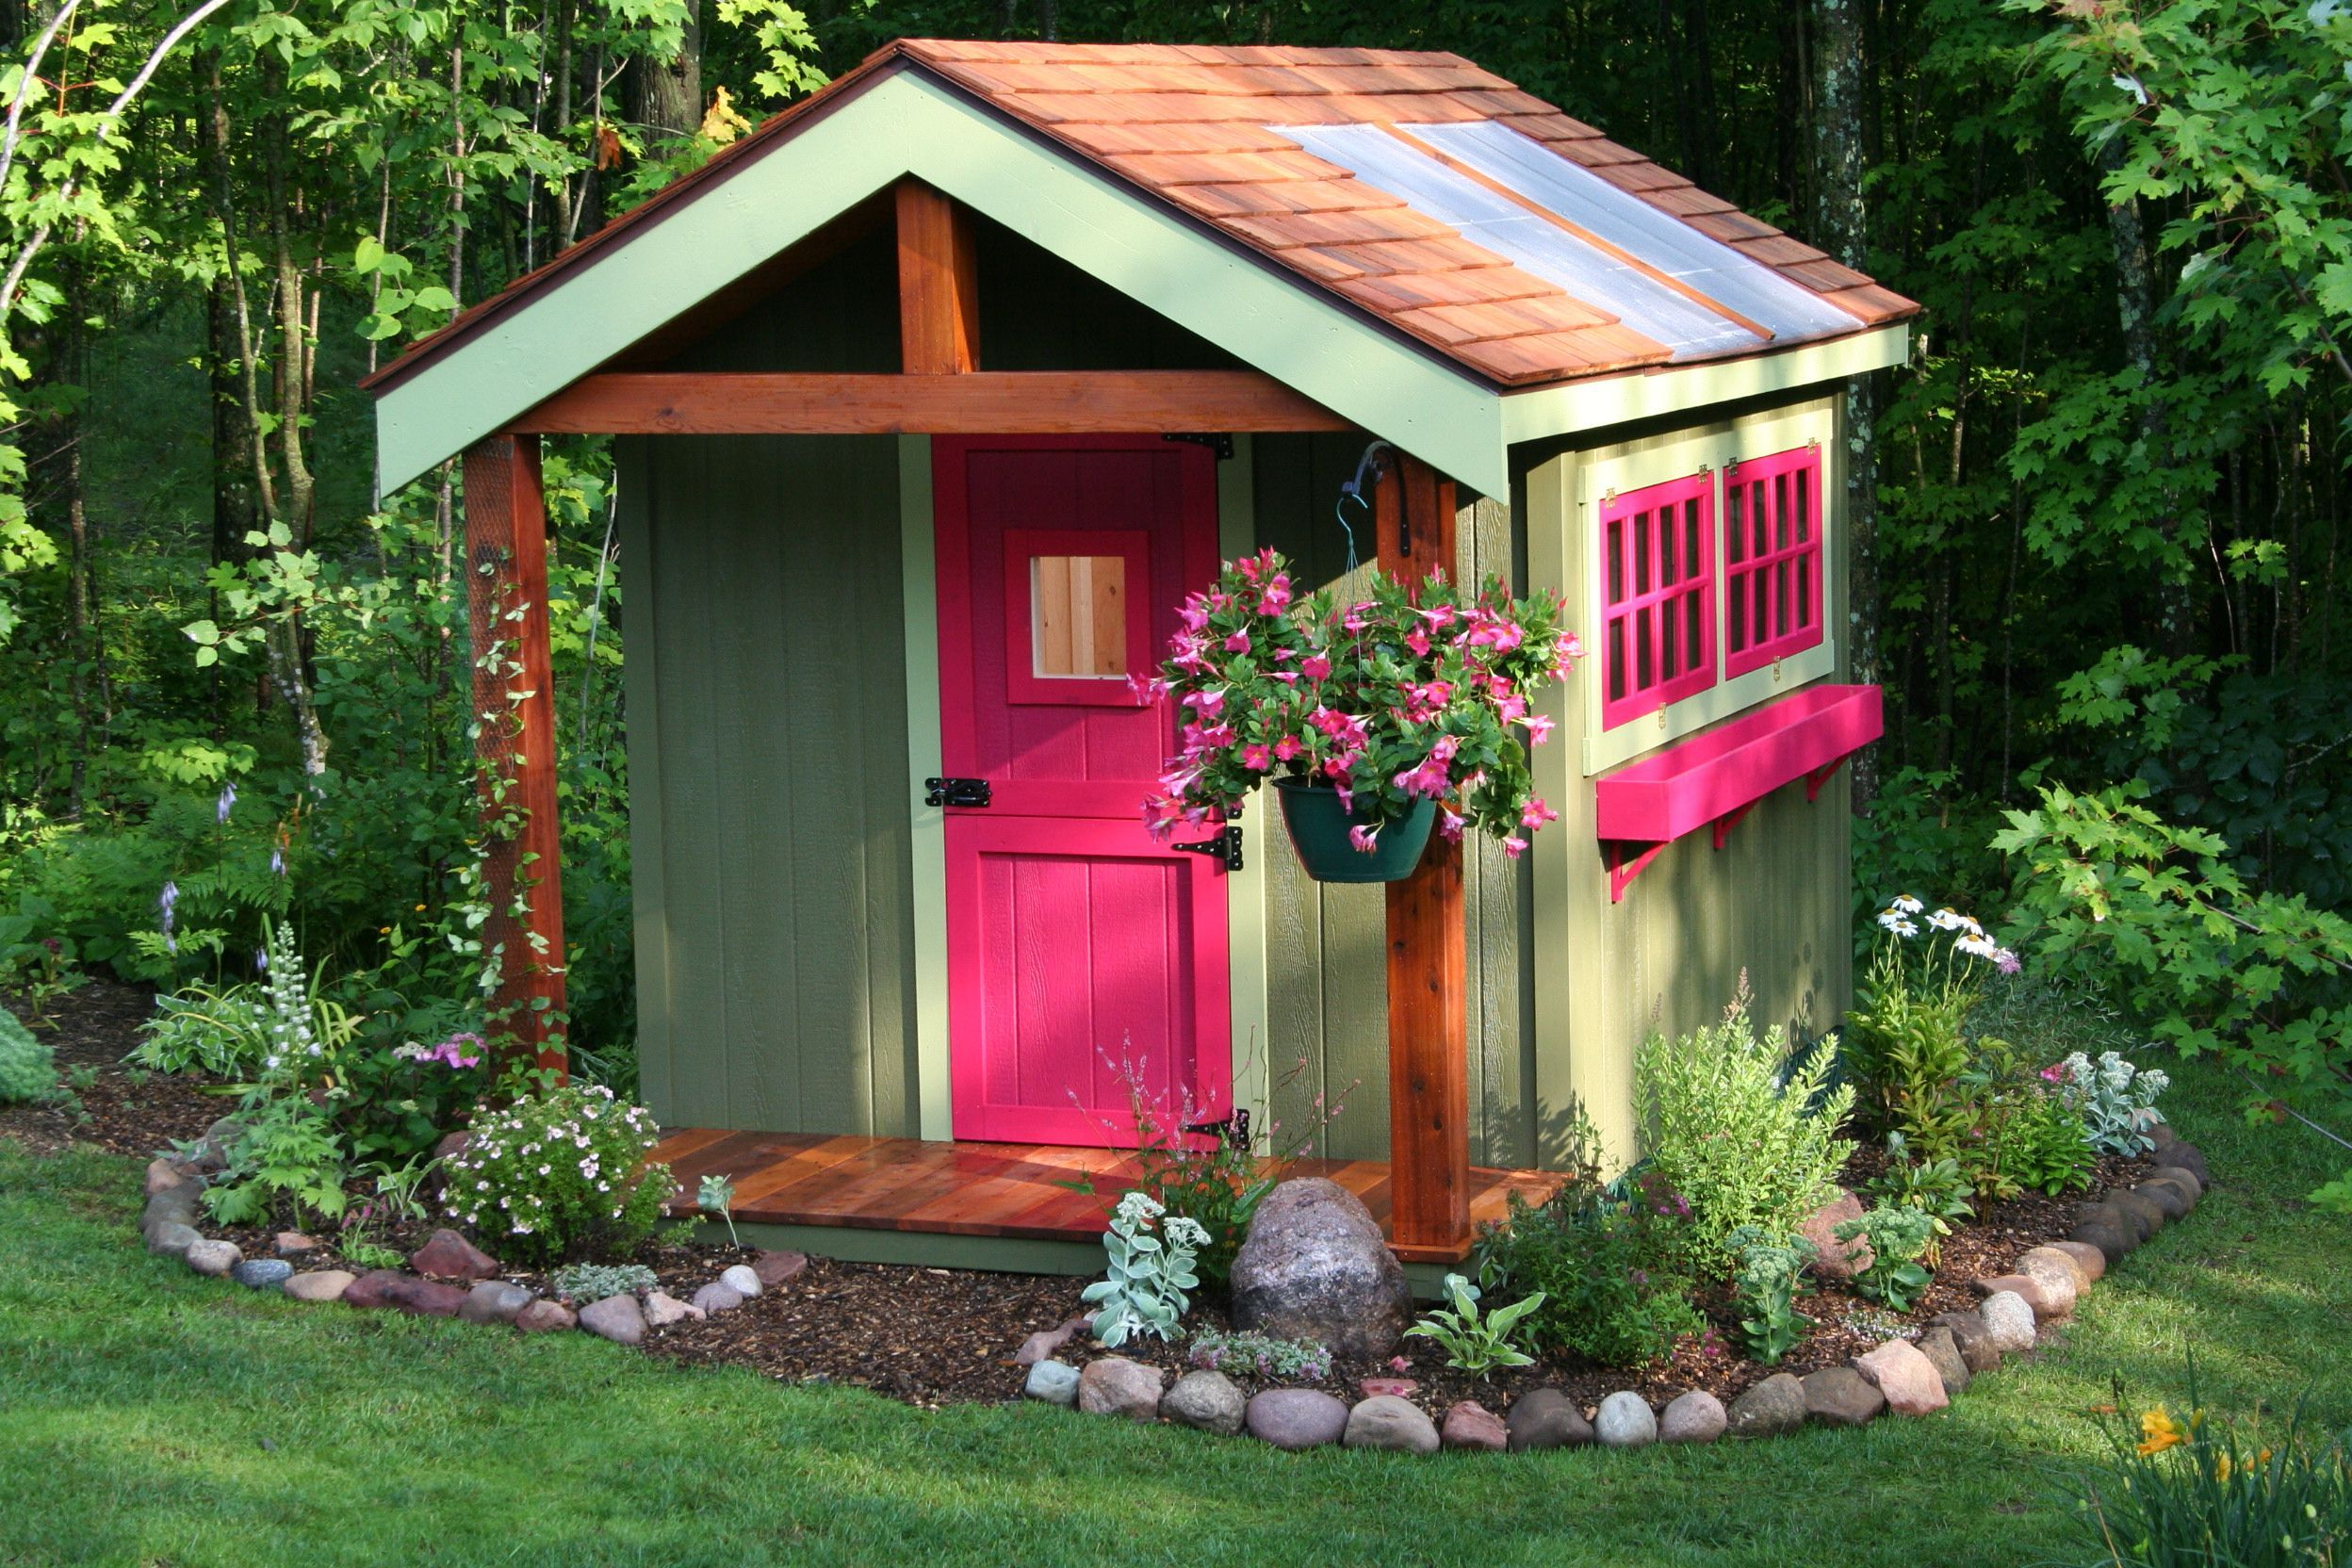 garden shed landscaping ideas flamboyant garden shed for on extraordinary unique small storage shed ideas for your garden little plans for building id=56882